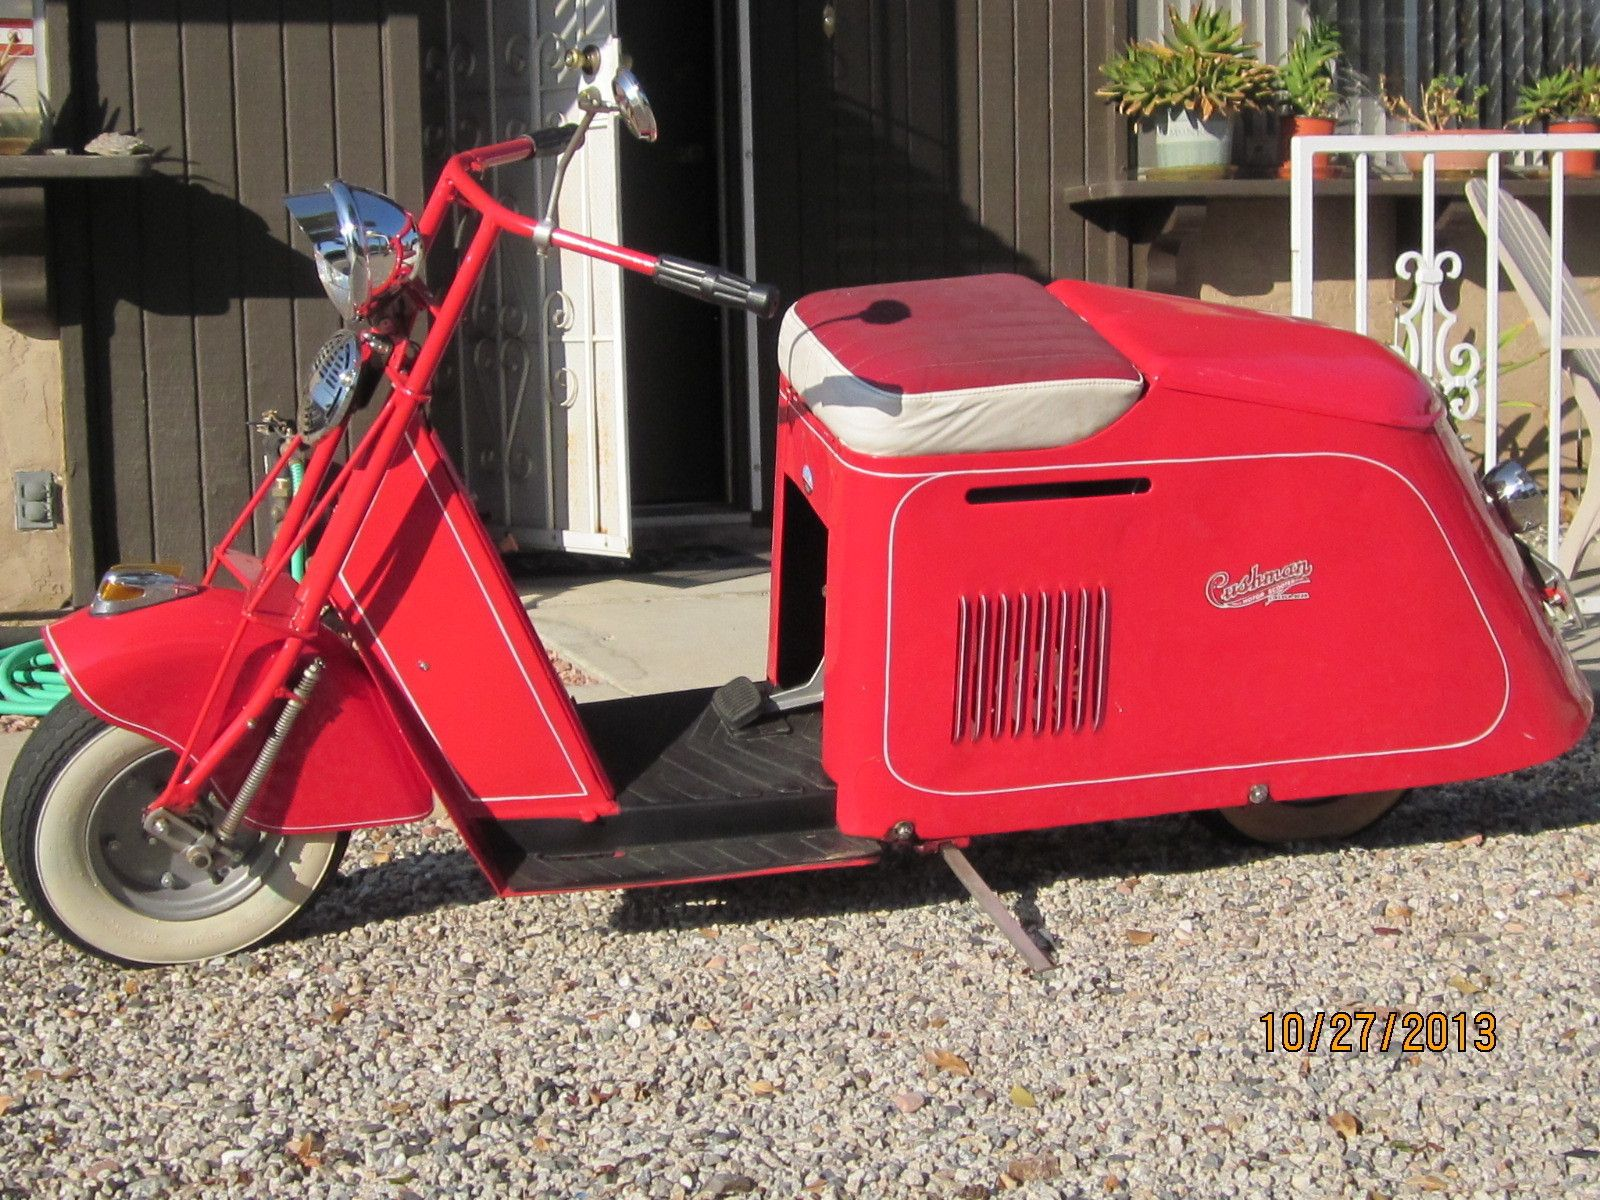 1946 Cushman Motor Scooter Step Through Motor Scooters Scooter Mini Bike